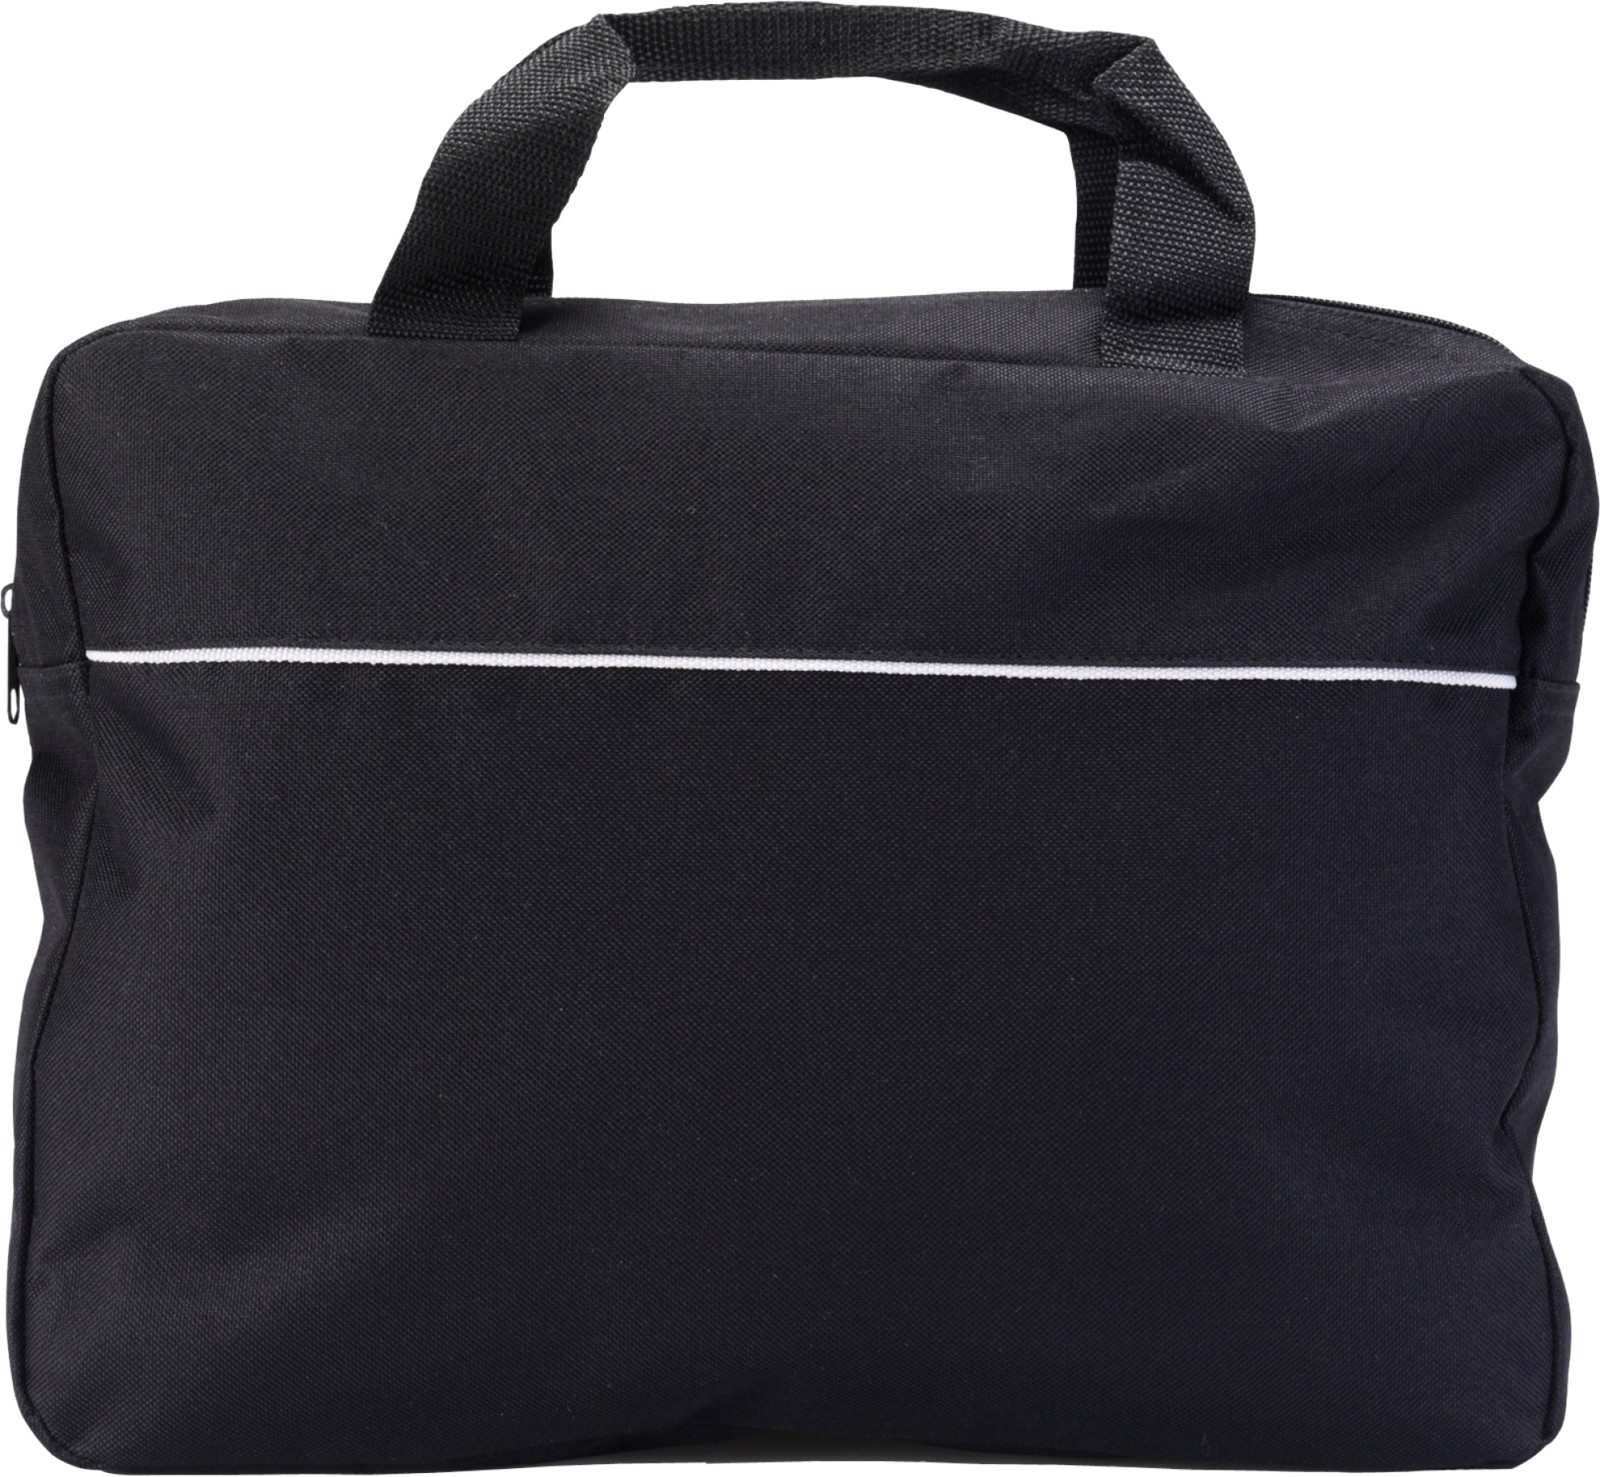 Polyester (600D) document bag - Black